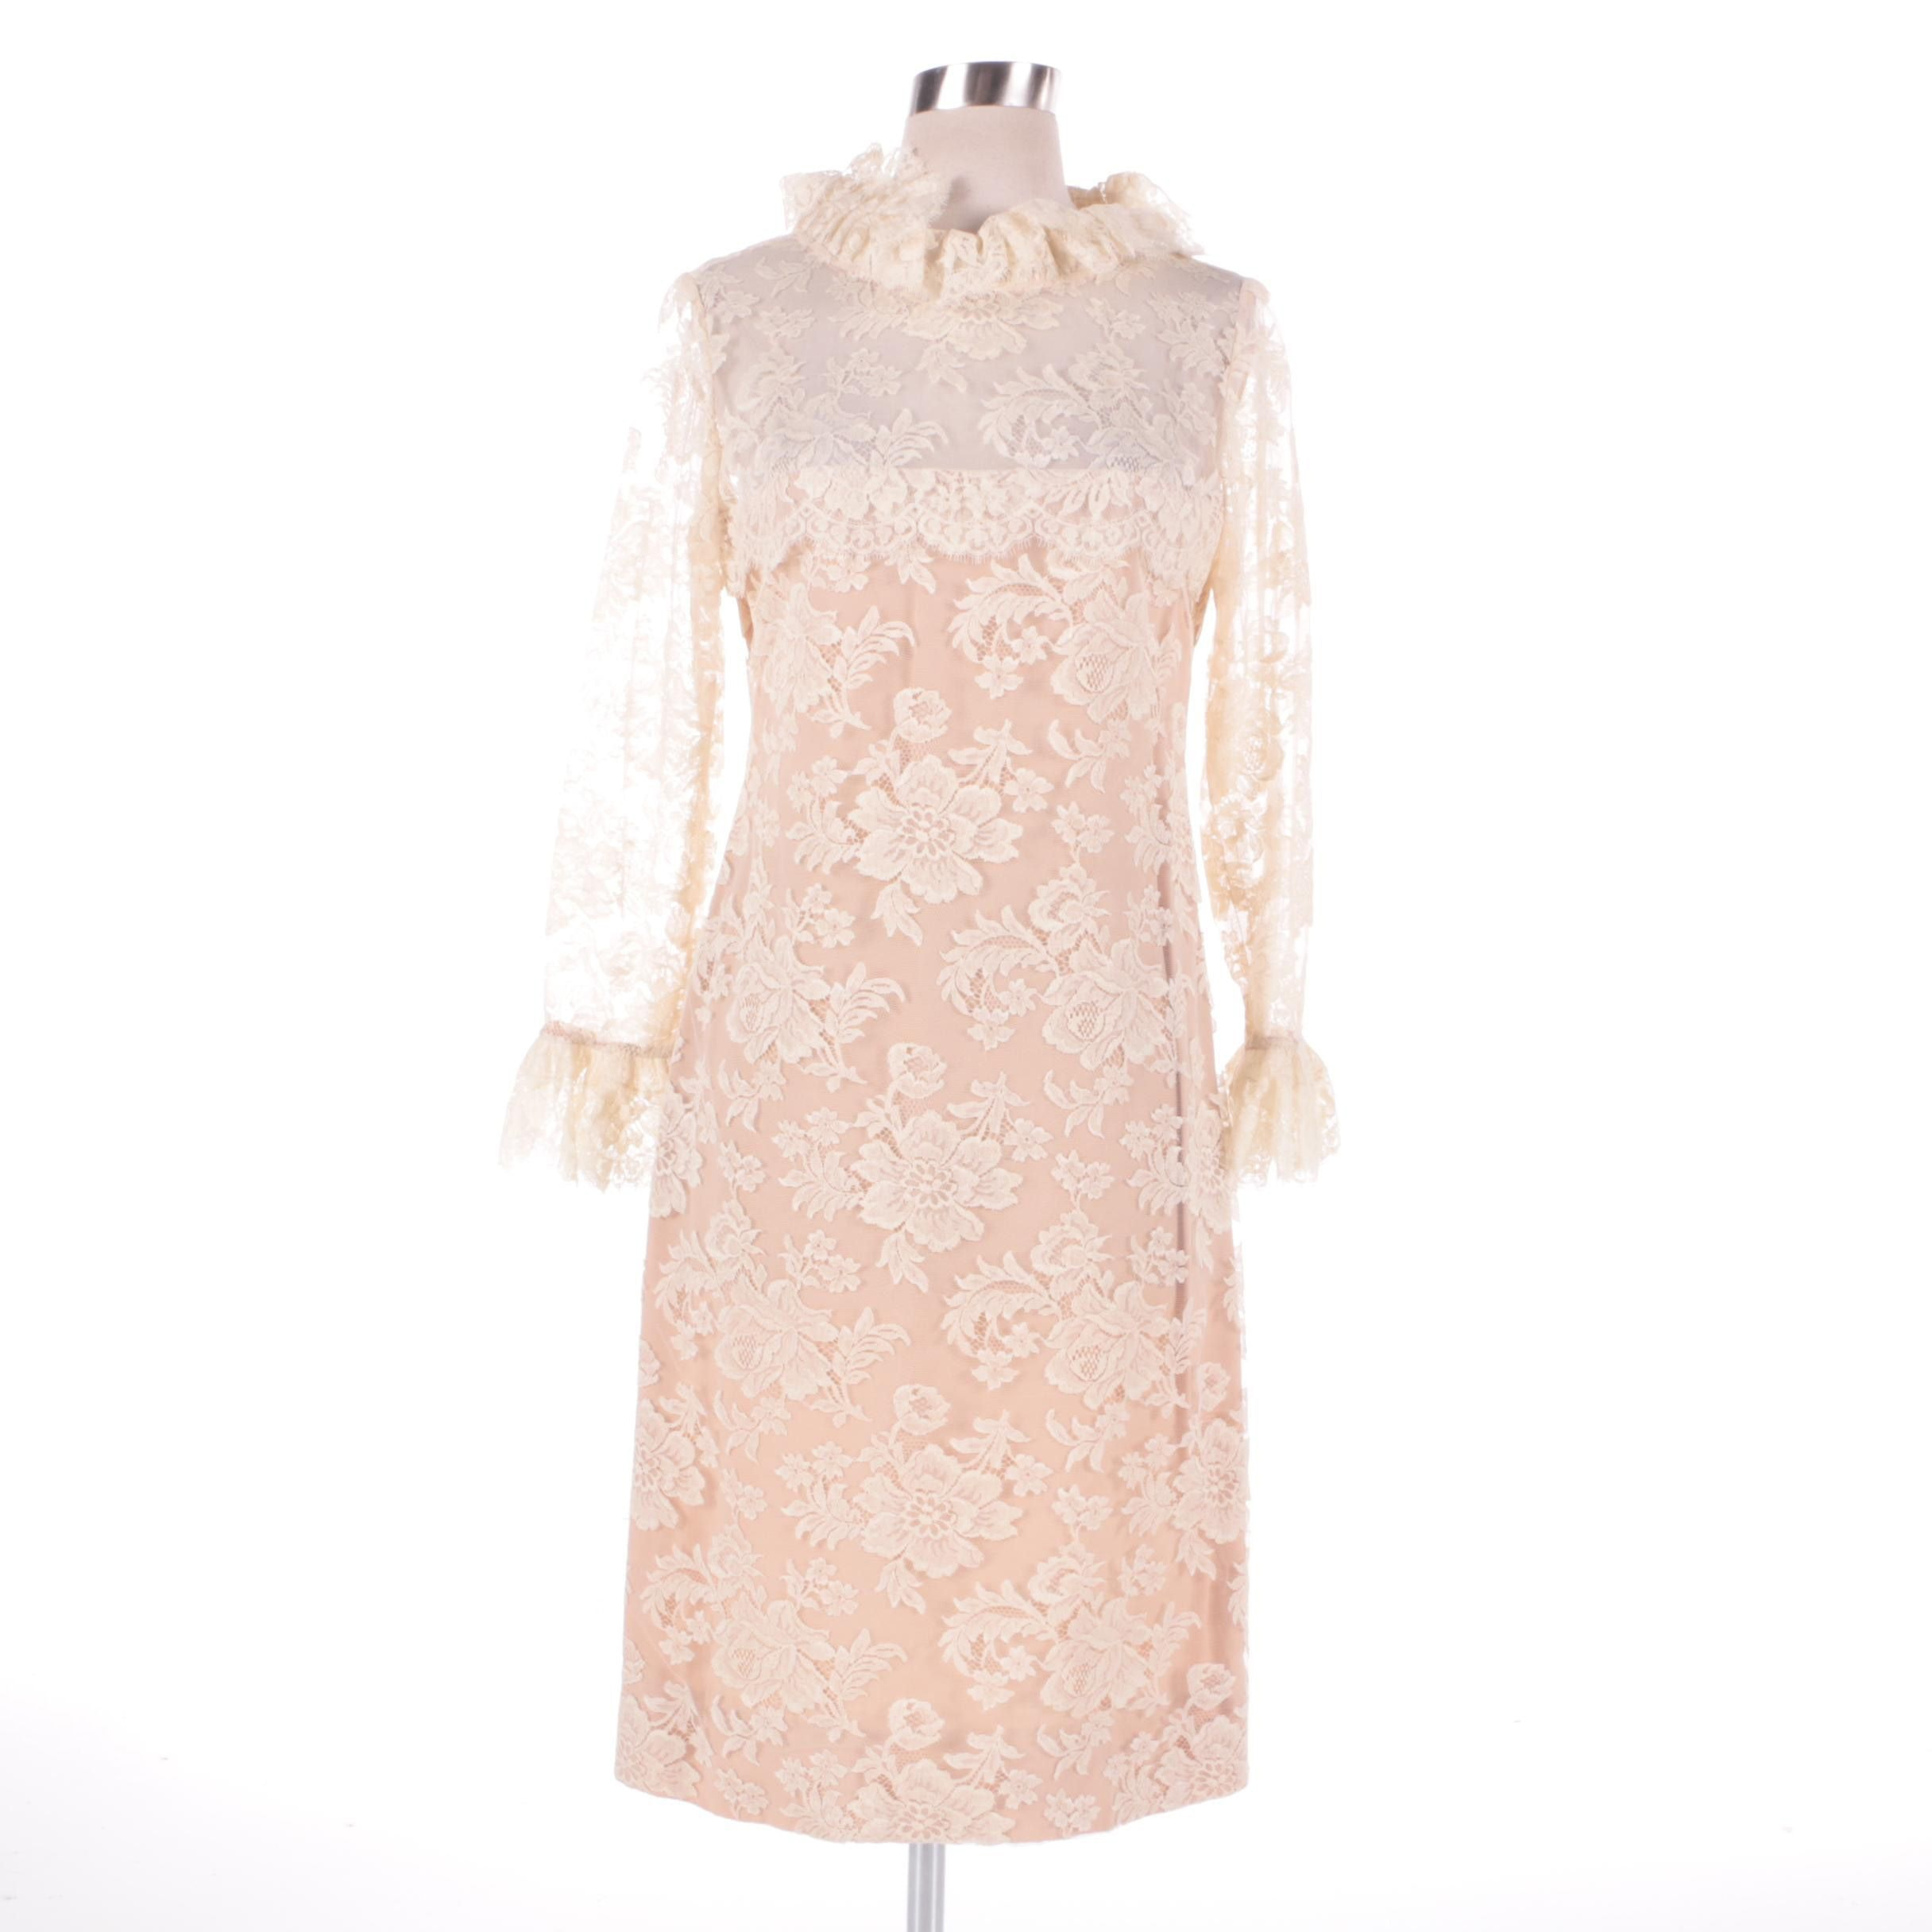 1960s Vintage Bill Blass for Maurice Rentner Ivory Chantilly Lace Ruffle Dress